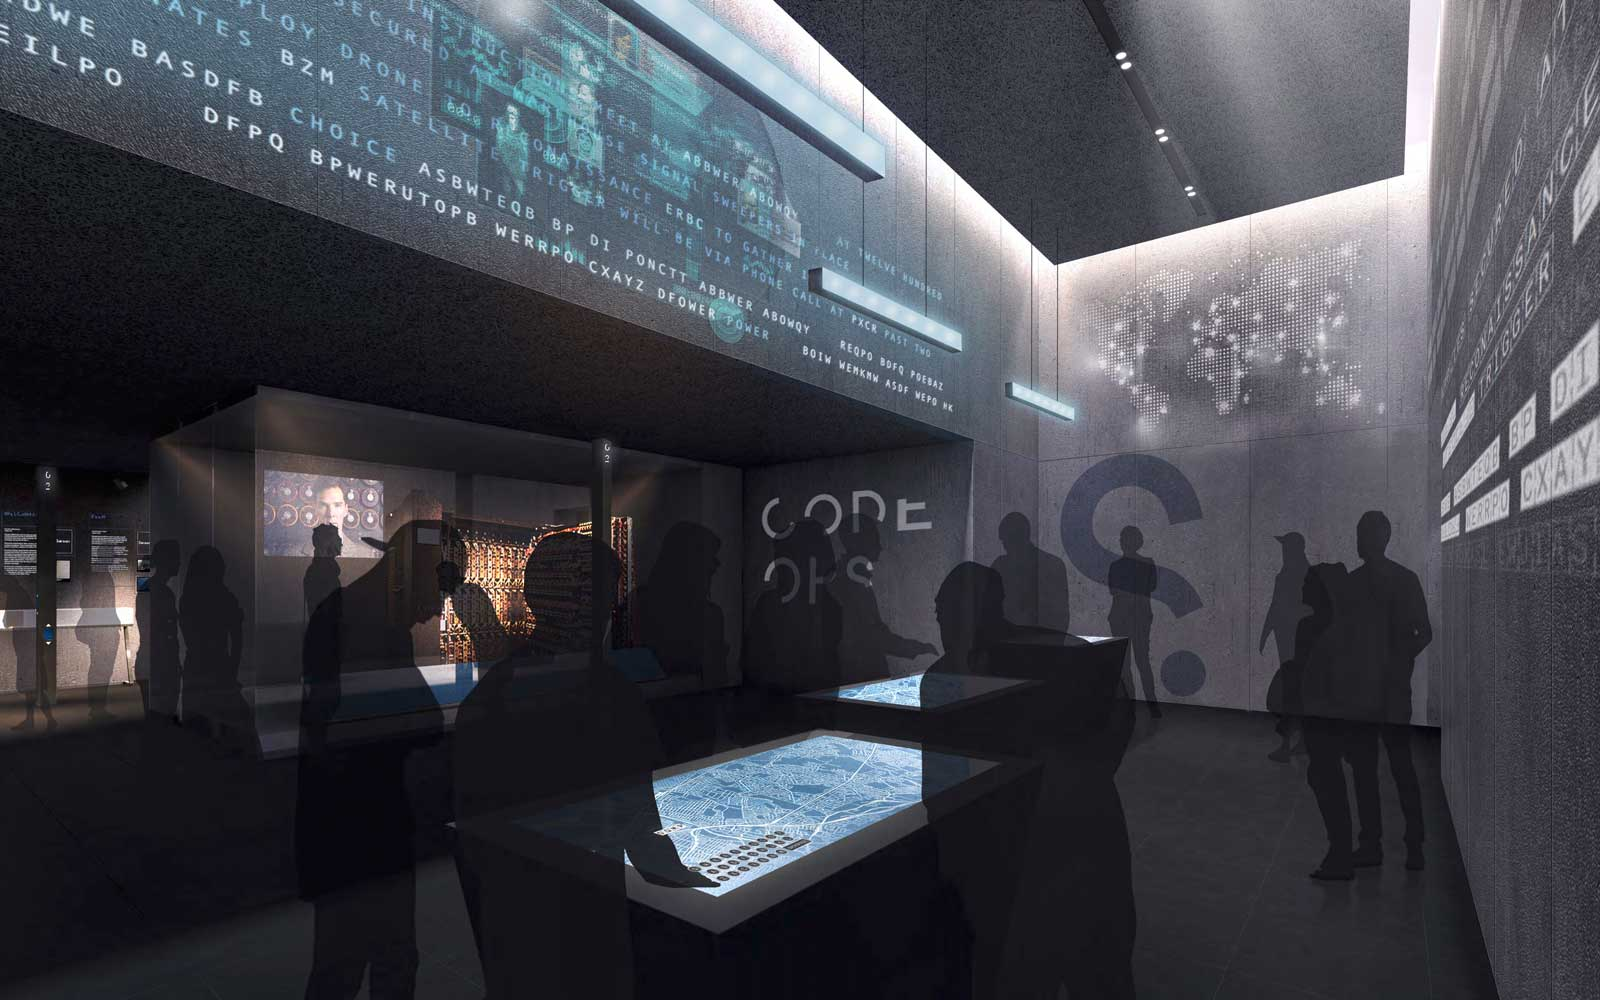 Tickets Are Now on Sale for a New Spy Museum in New York City